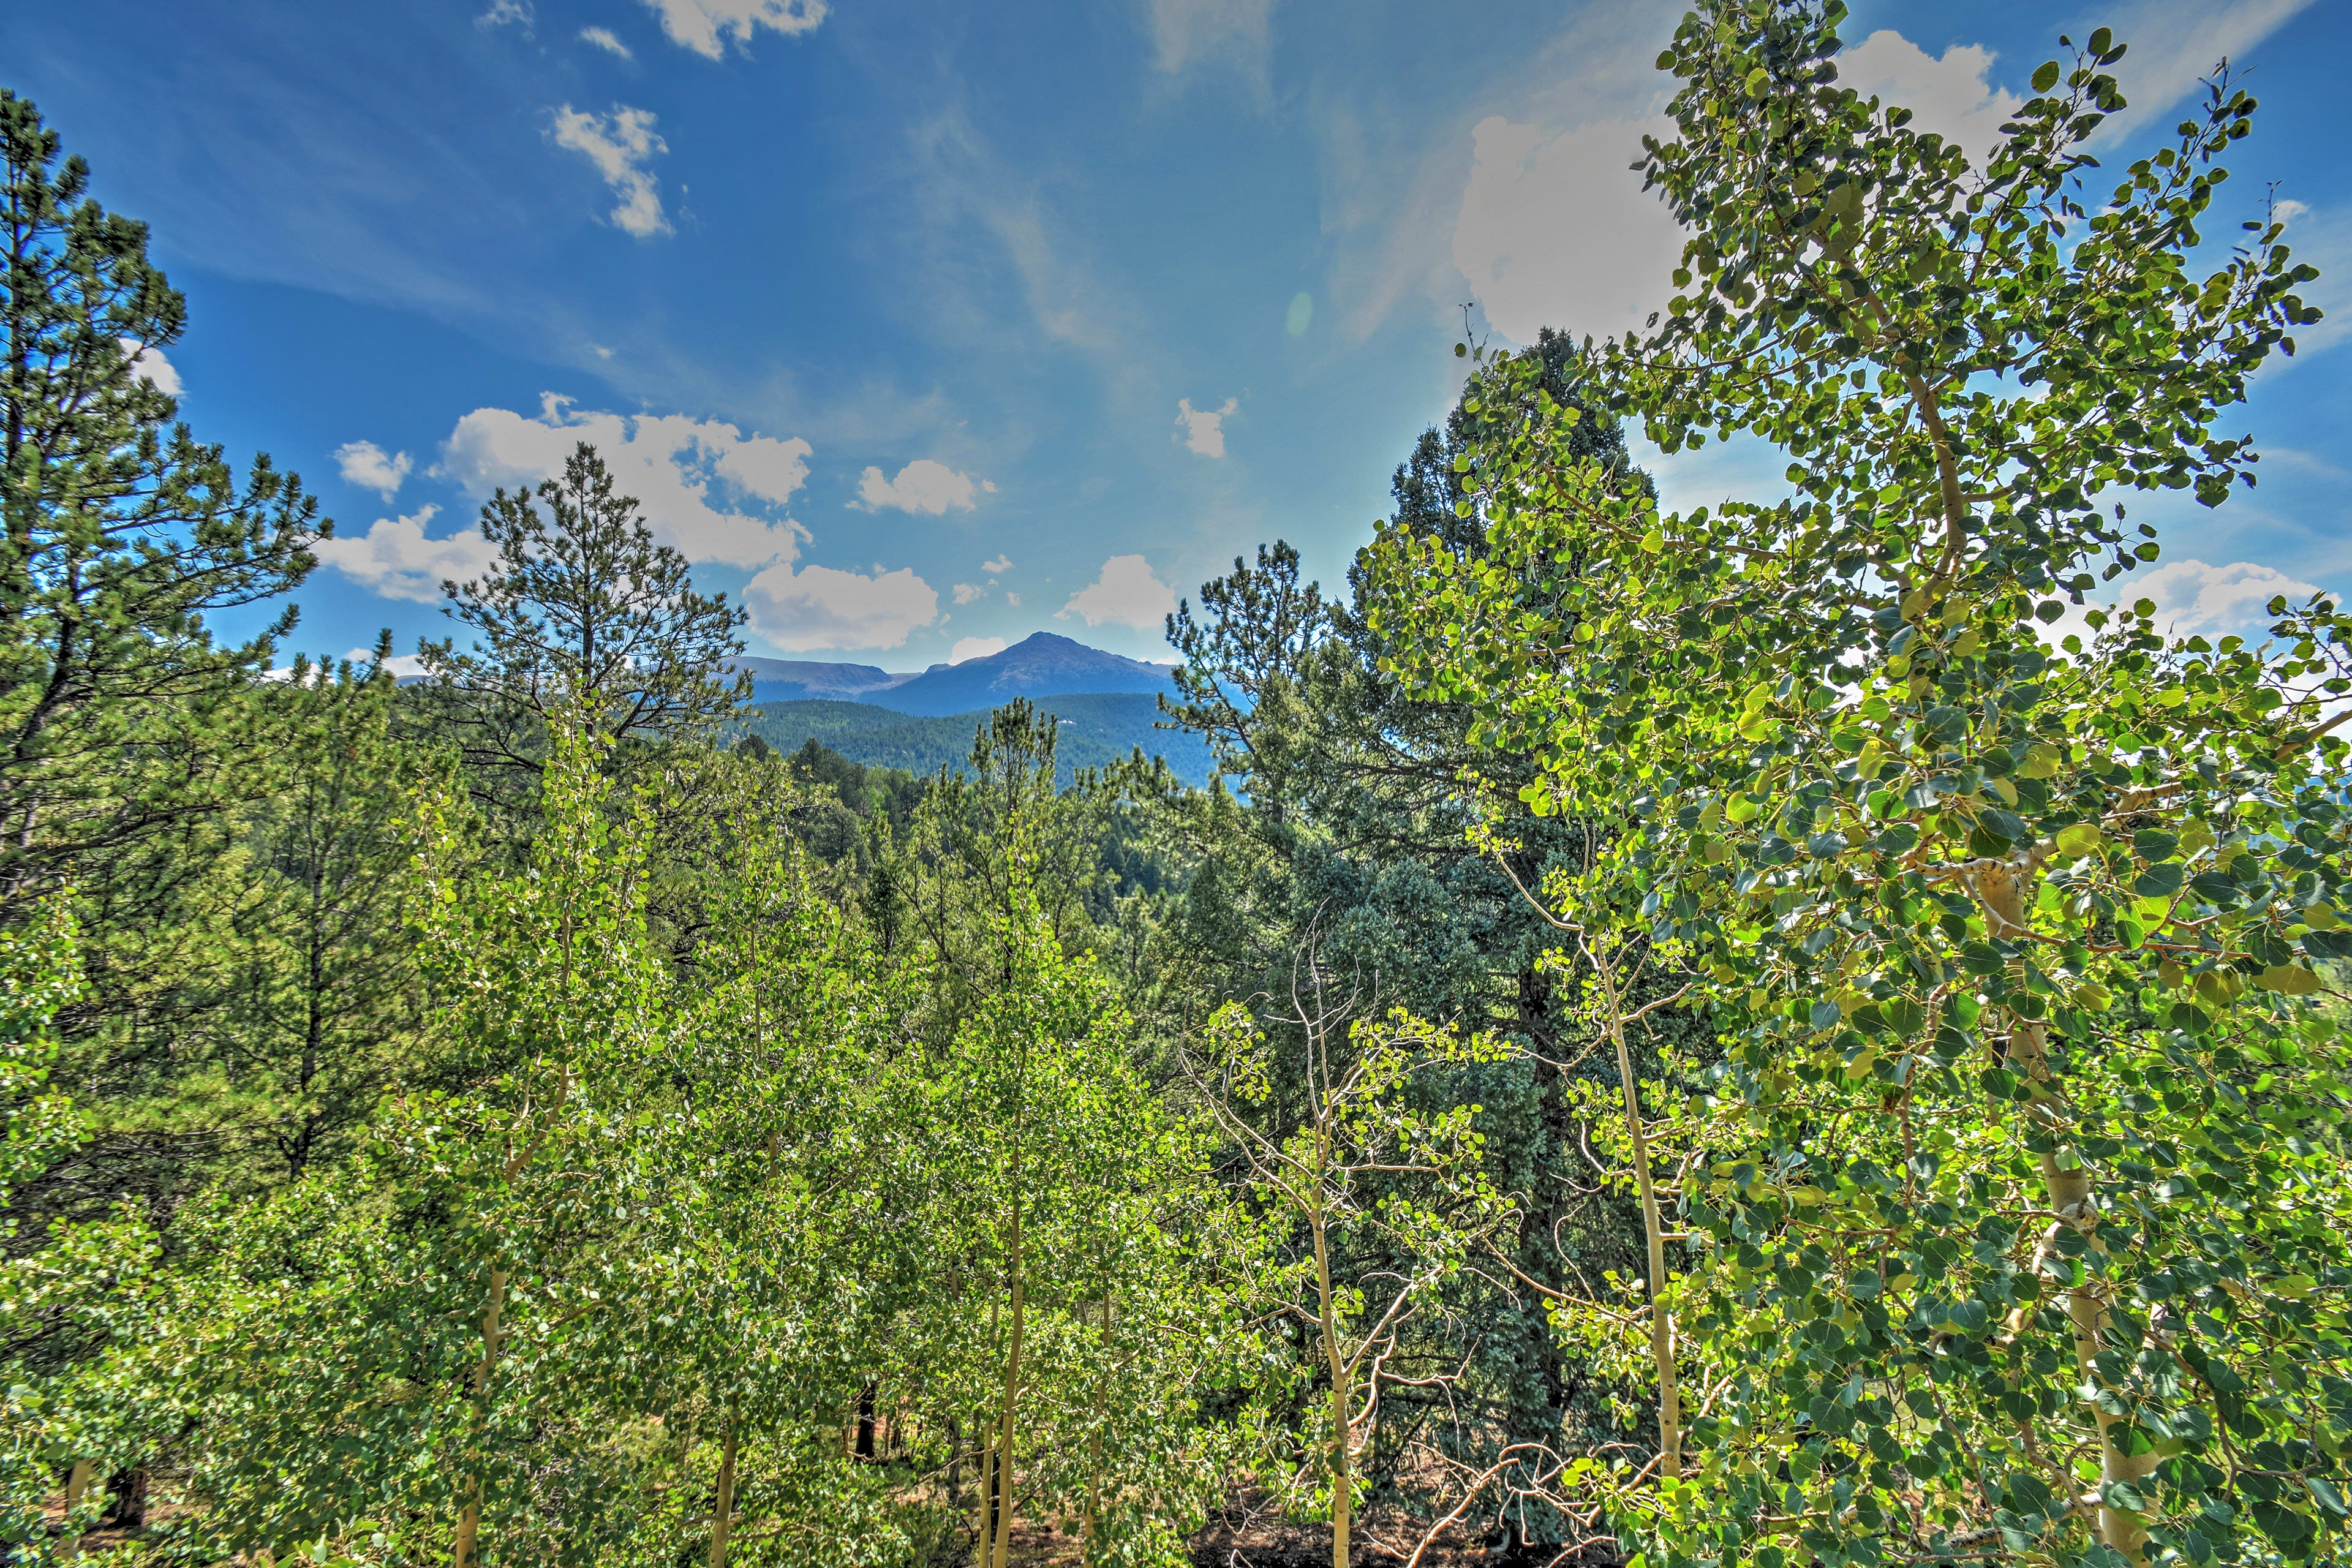 You'll love seeing these mountain views every day!